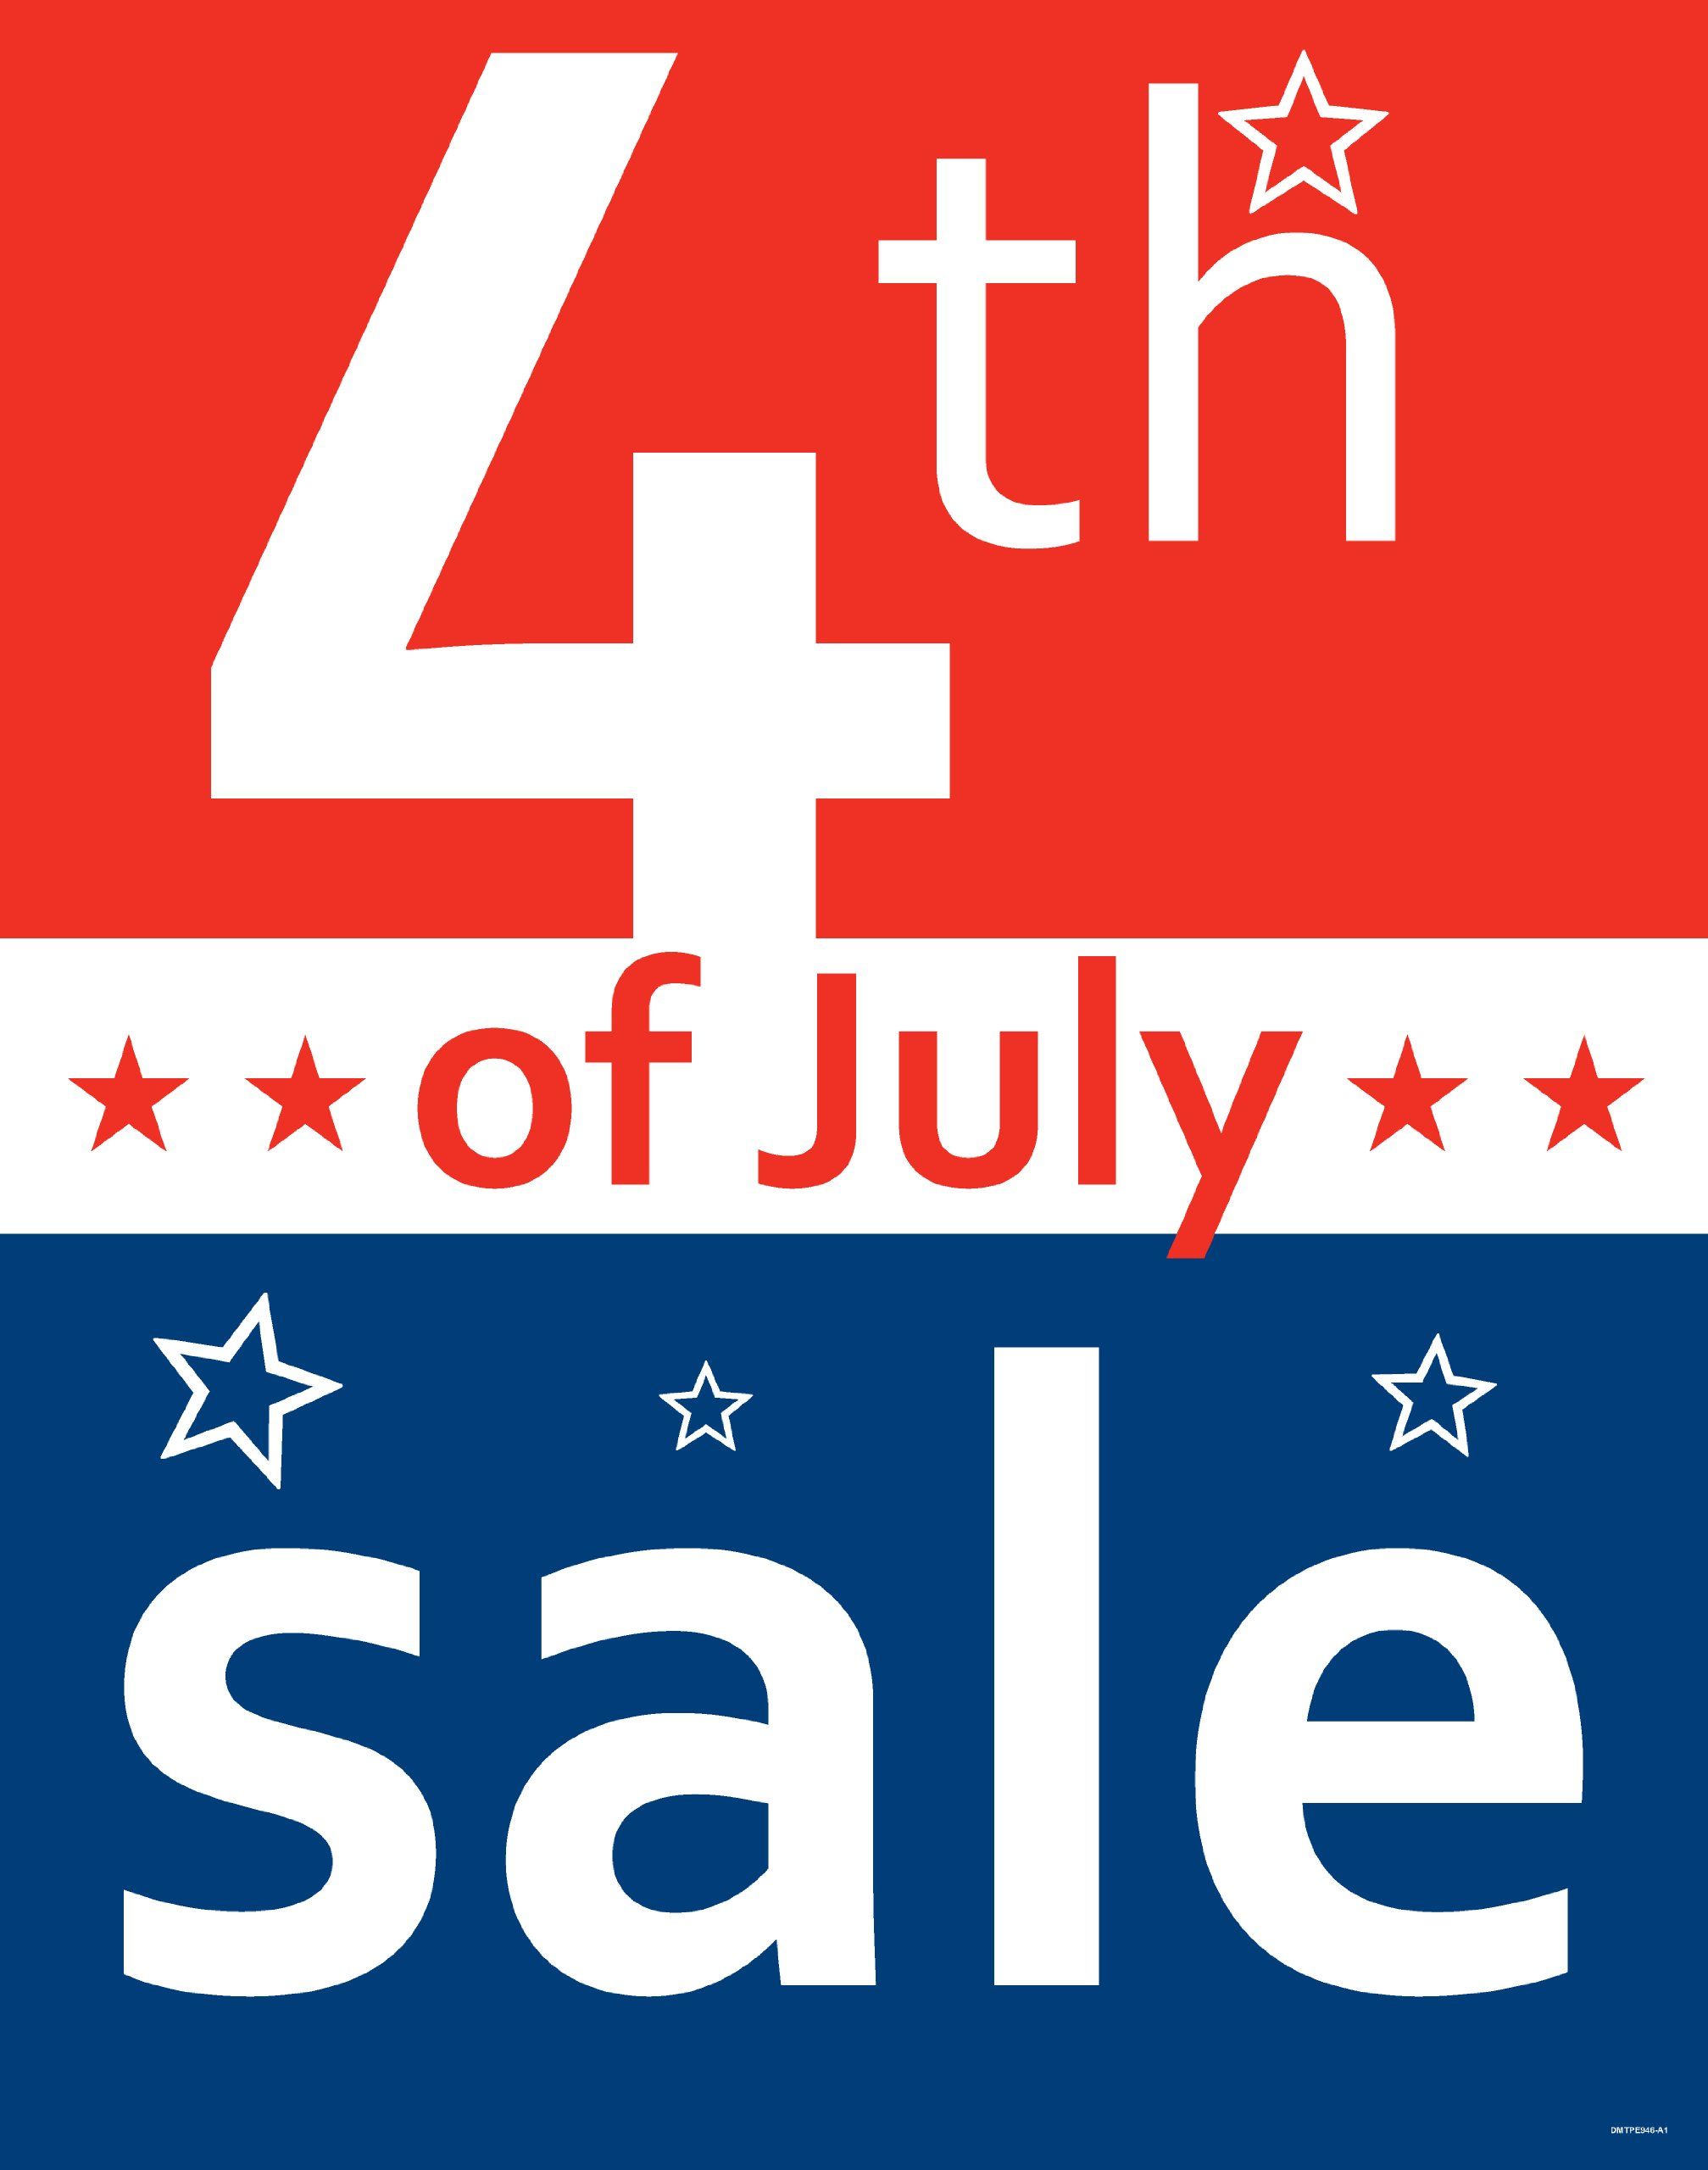 The Best Fourth of July Beauty Sales and Deals to Shop Online. By Lauren Swanson @lo_swann. June 27, facebook dialog. Pinterest. facebook dialog. .